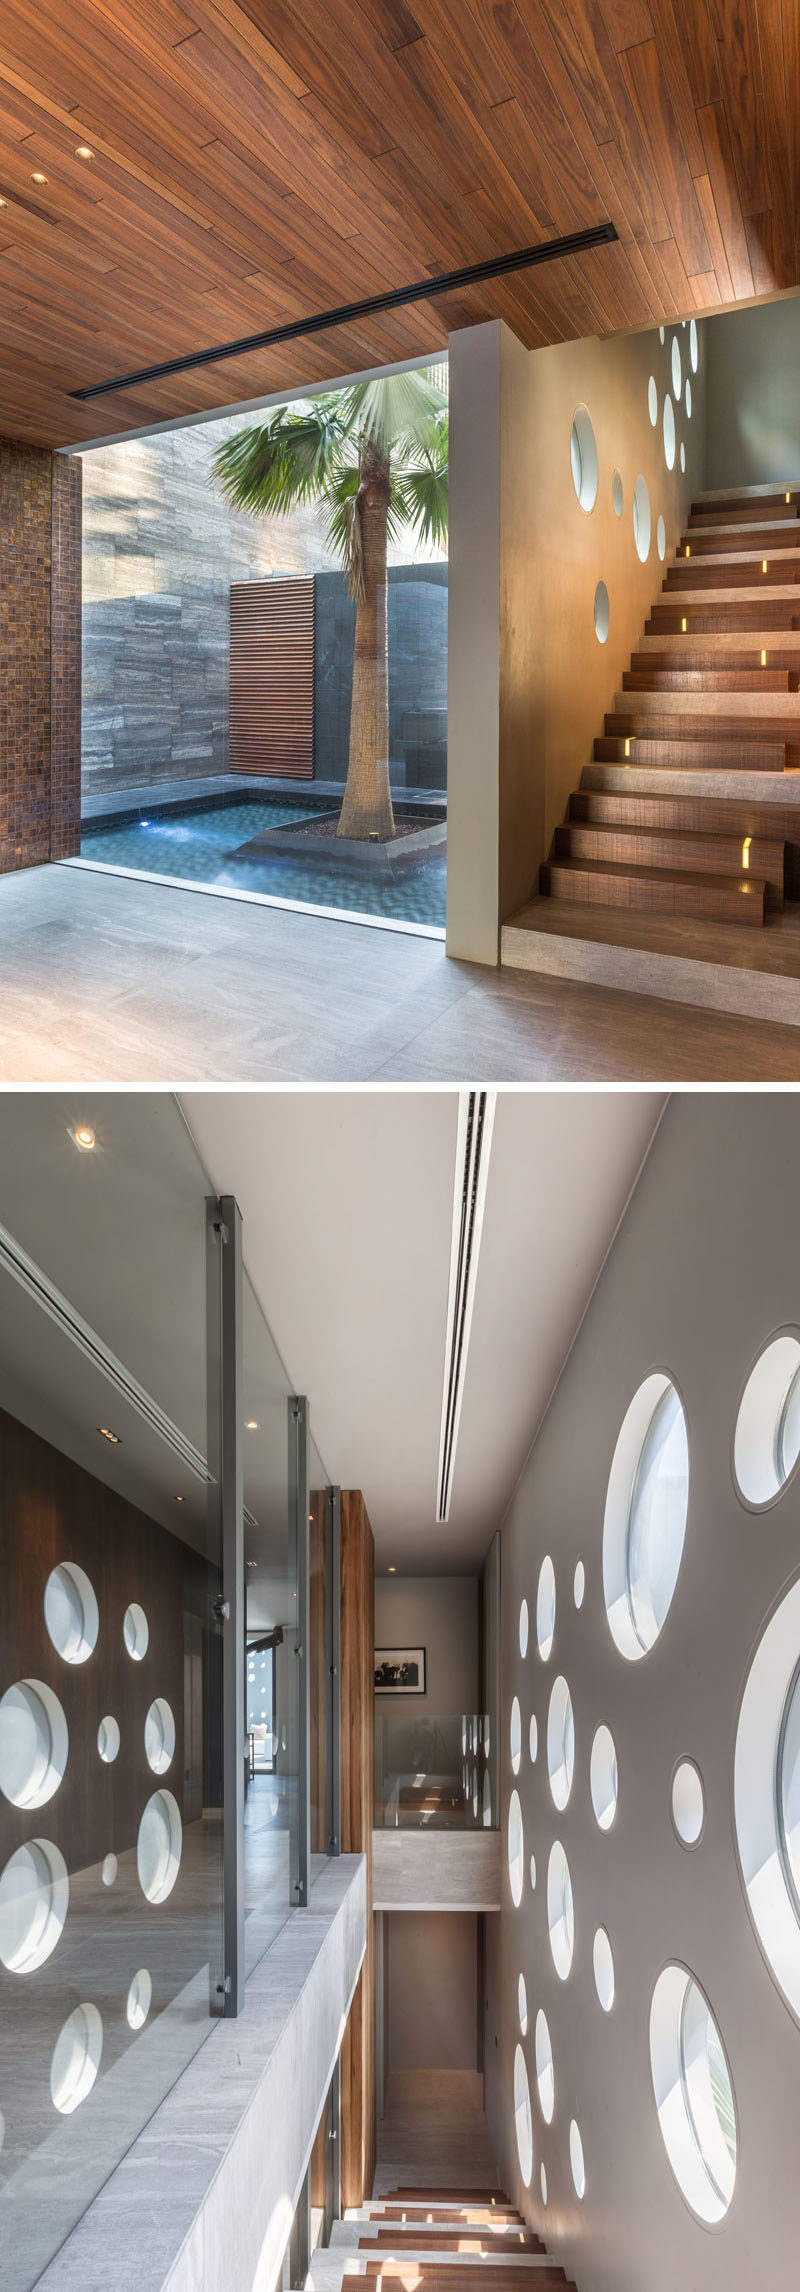 Large circular windows in the walls provide natural sunlight to the staircase.